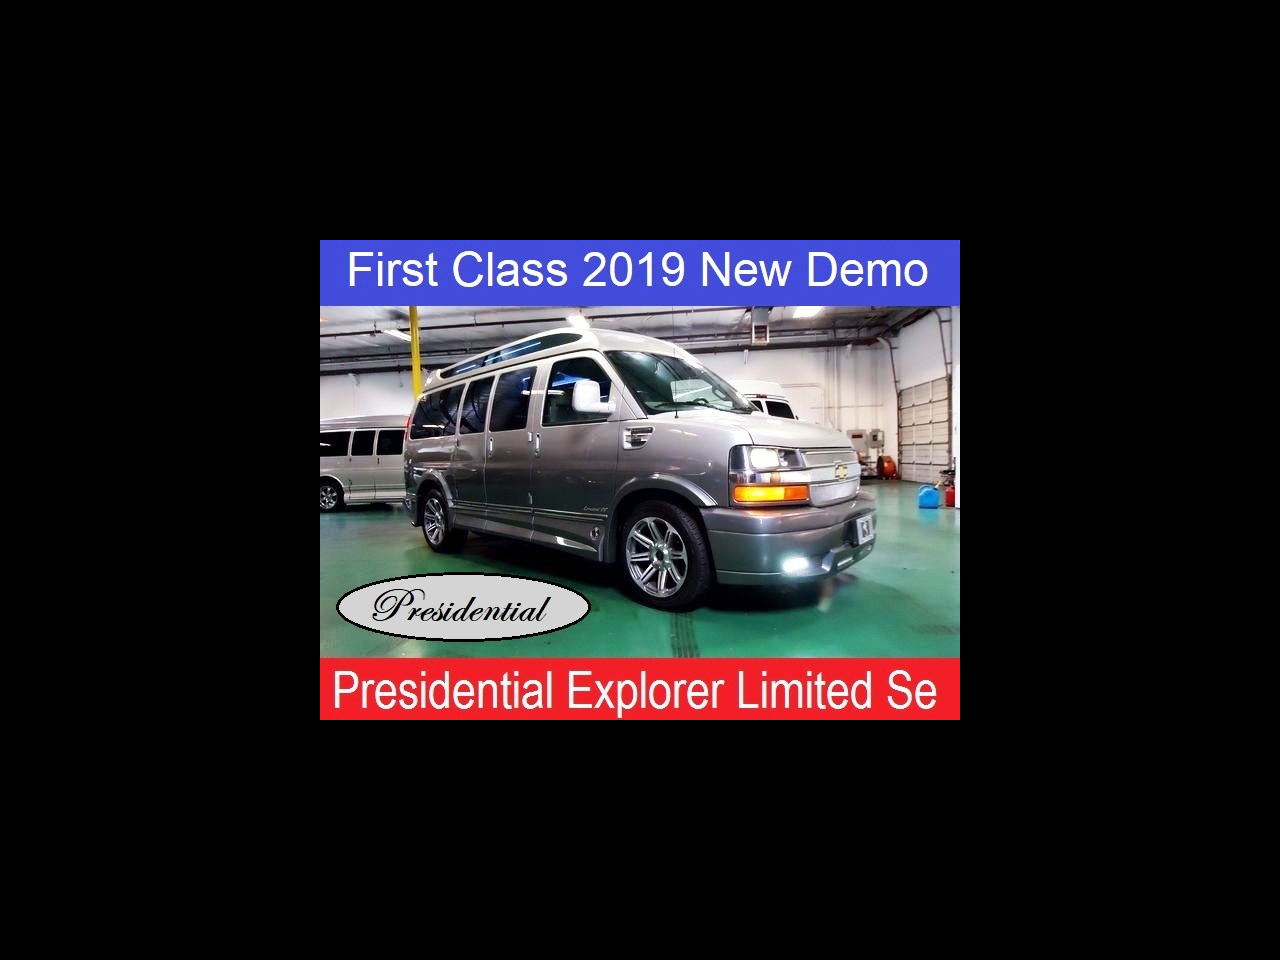 2019 Chevrolet Conversion Van Presidential Explorer Limited Xse Conversion Van